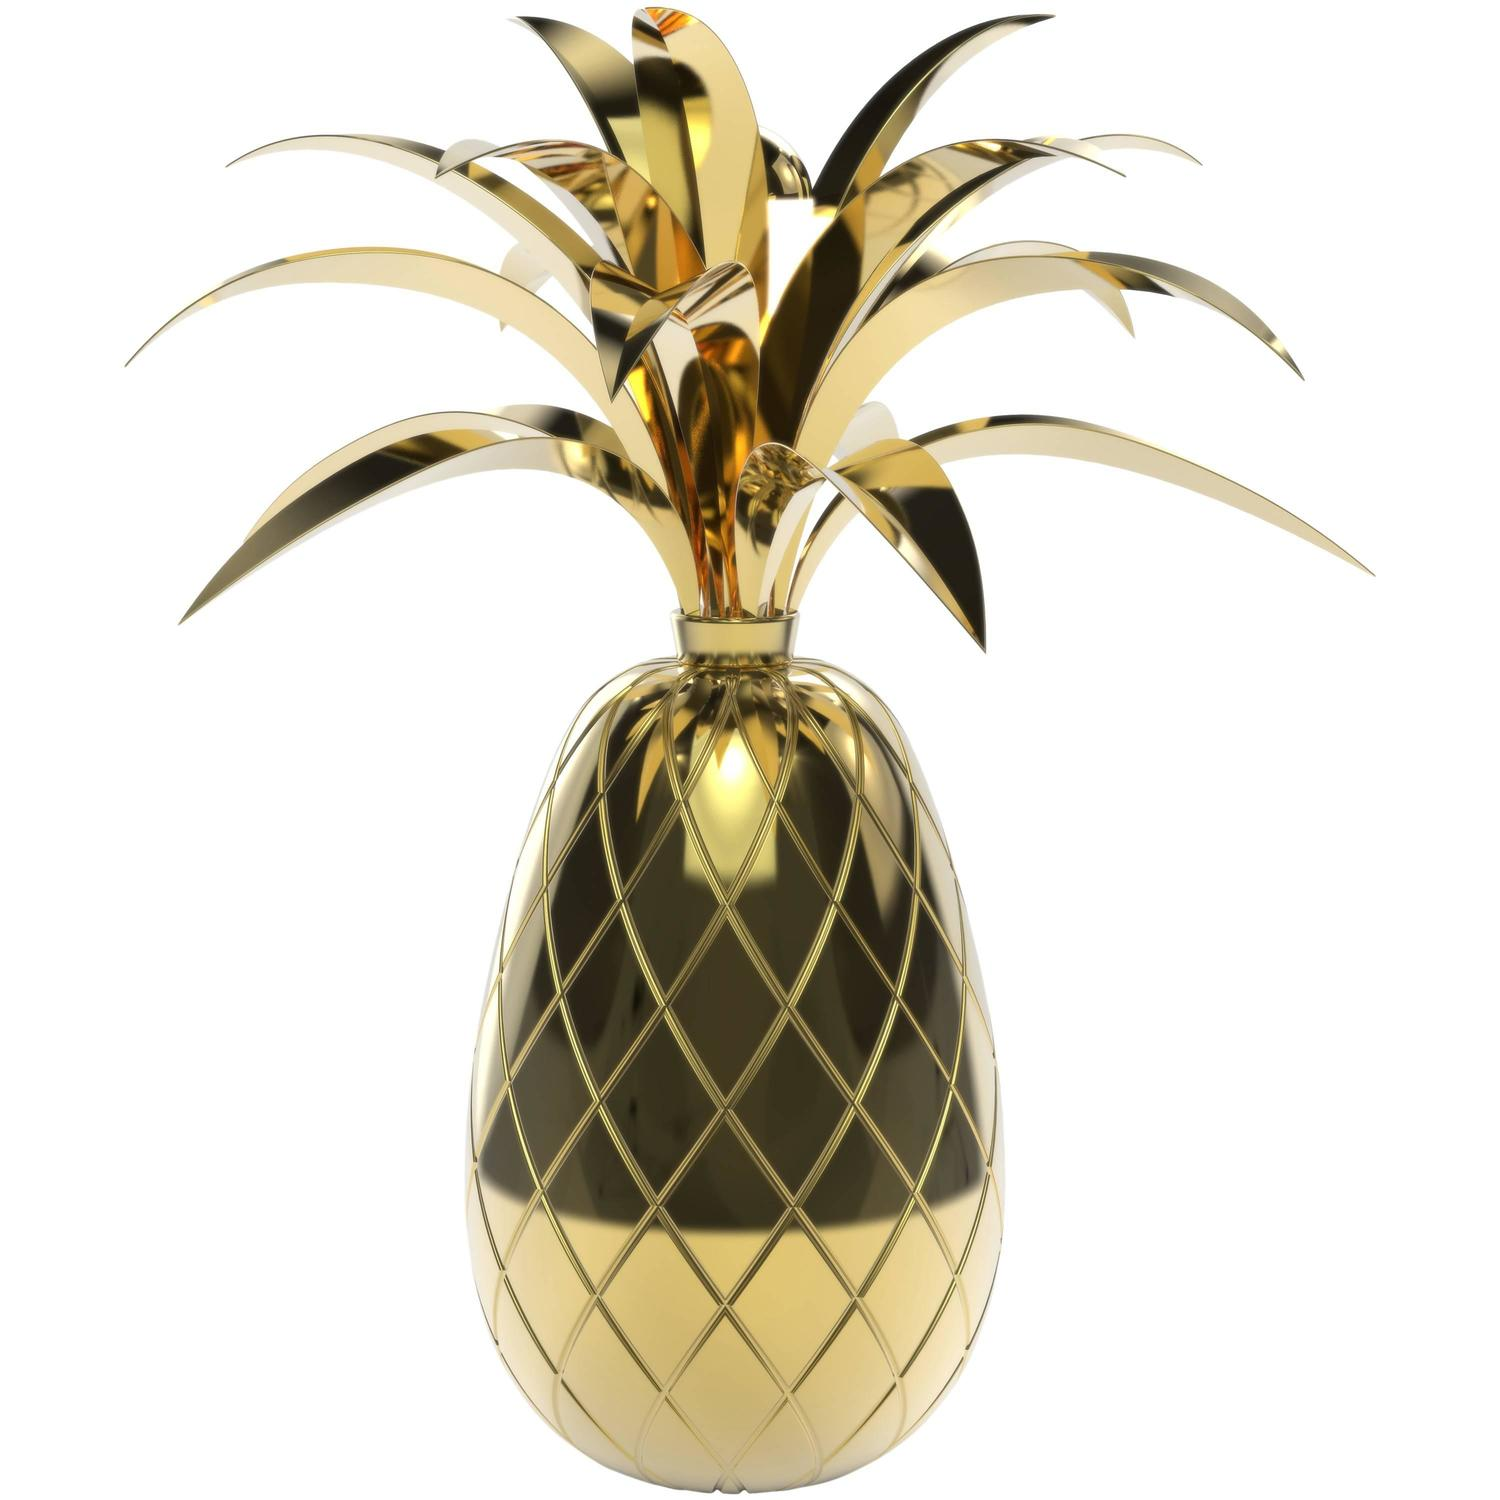 european gold plated brass miranda pineapple table lamp. Black Bedroom Furniture Sets. Home Design Ideas